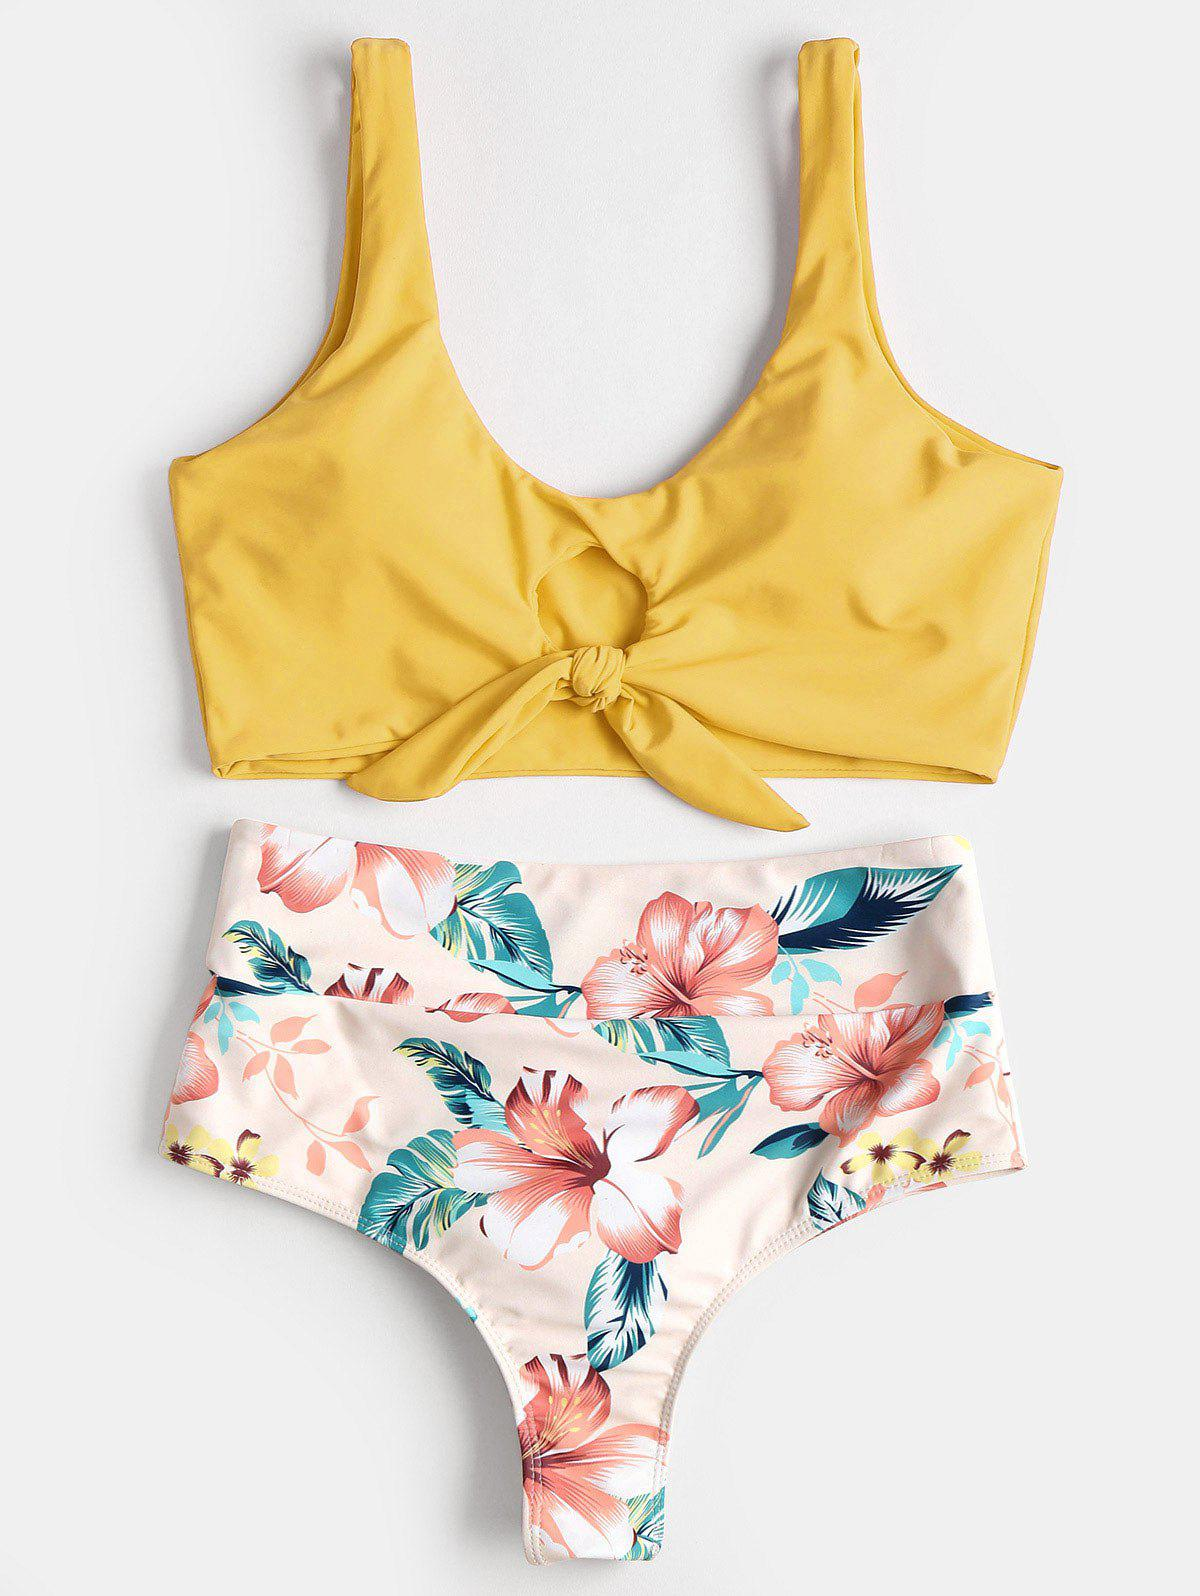 High Rise Knotted Floral Scrunch Bikini Swimwear - RUBBER DUCKY YELLOW M